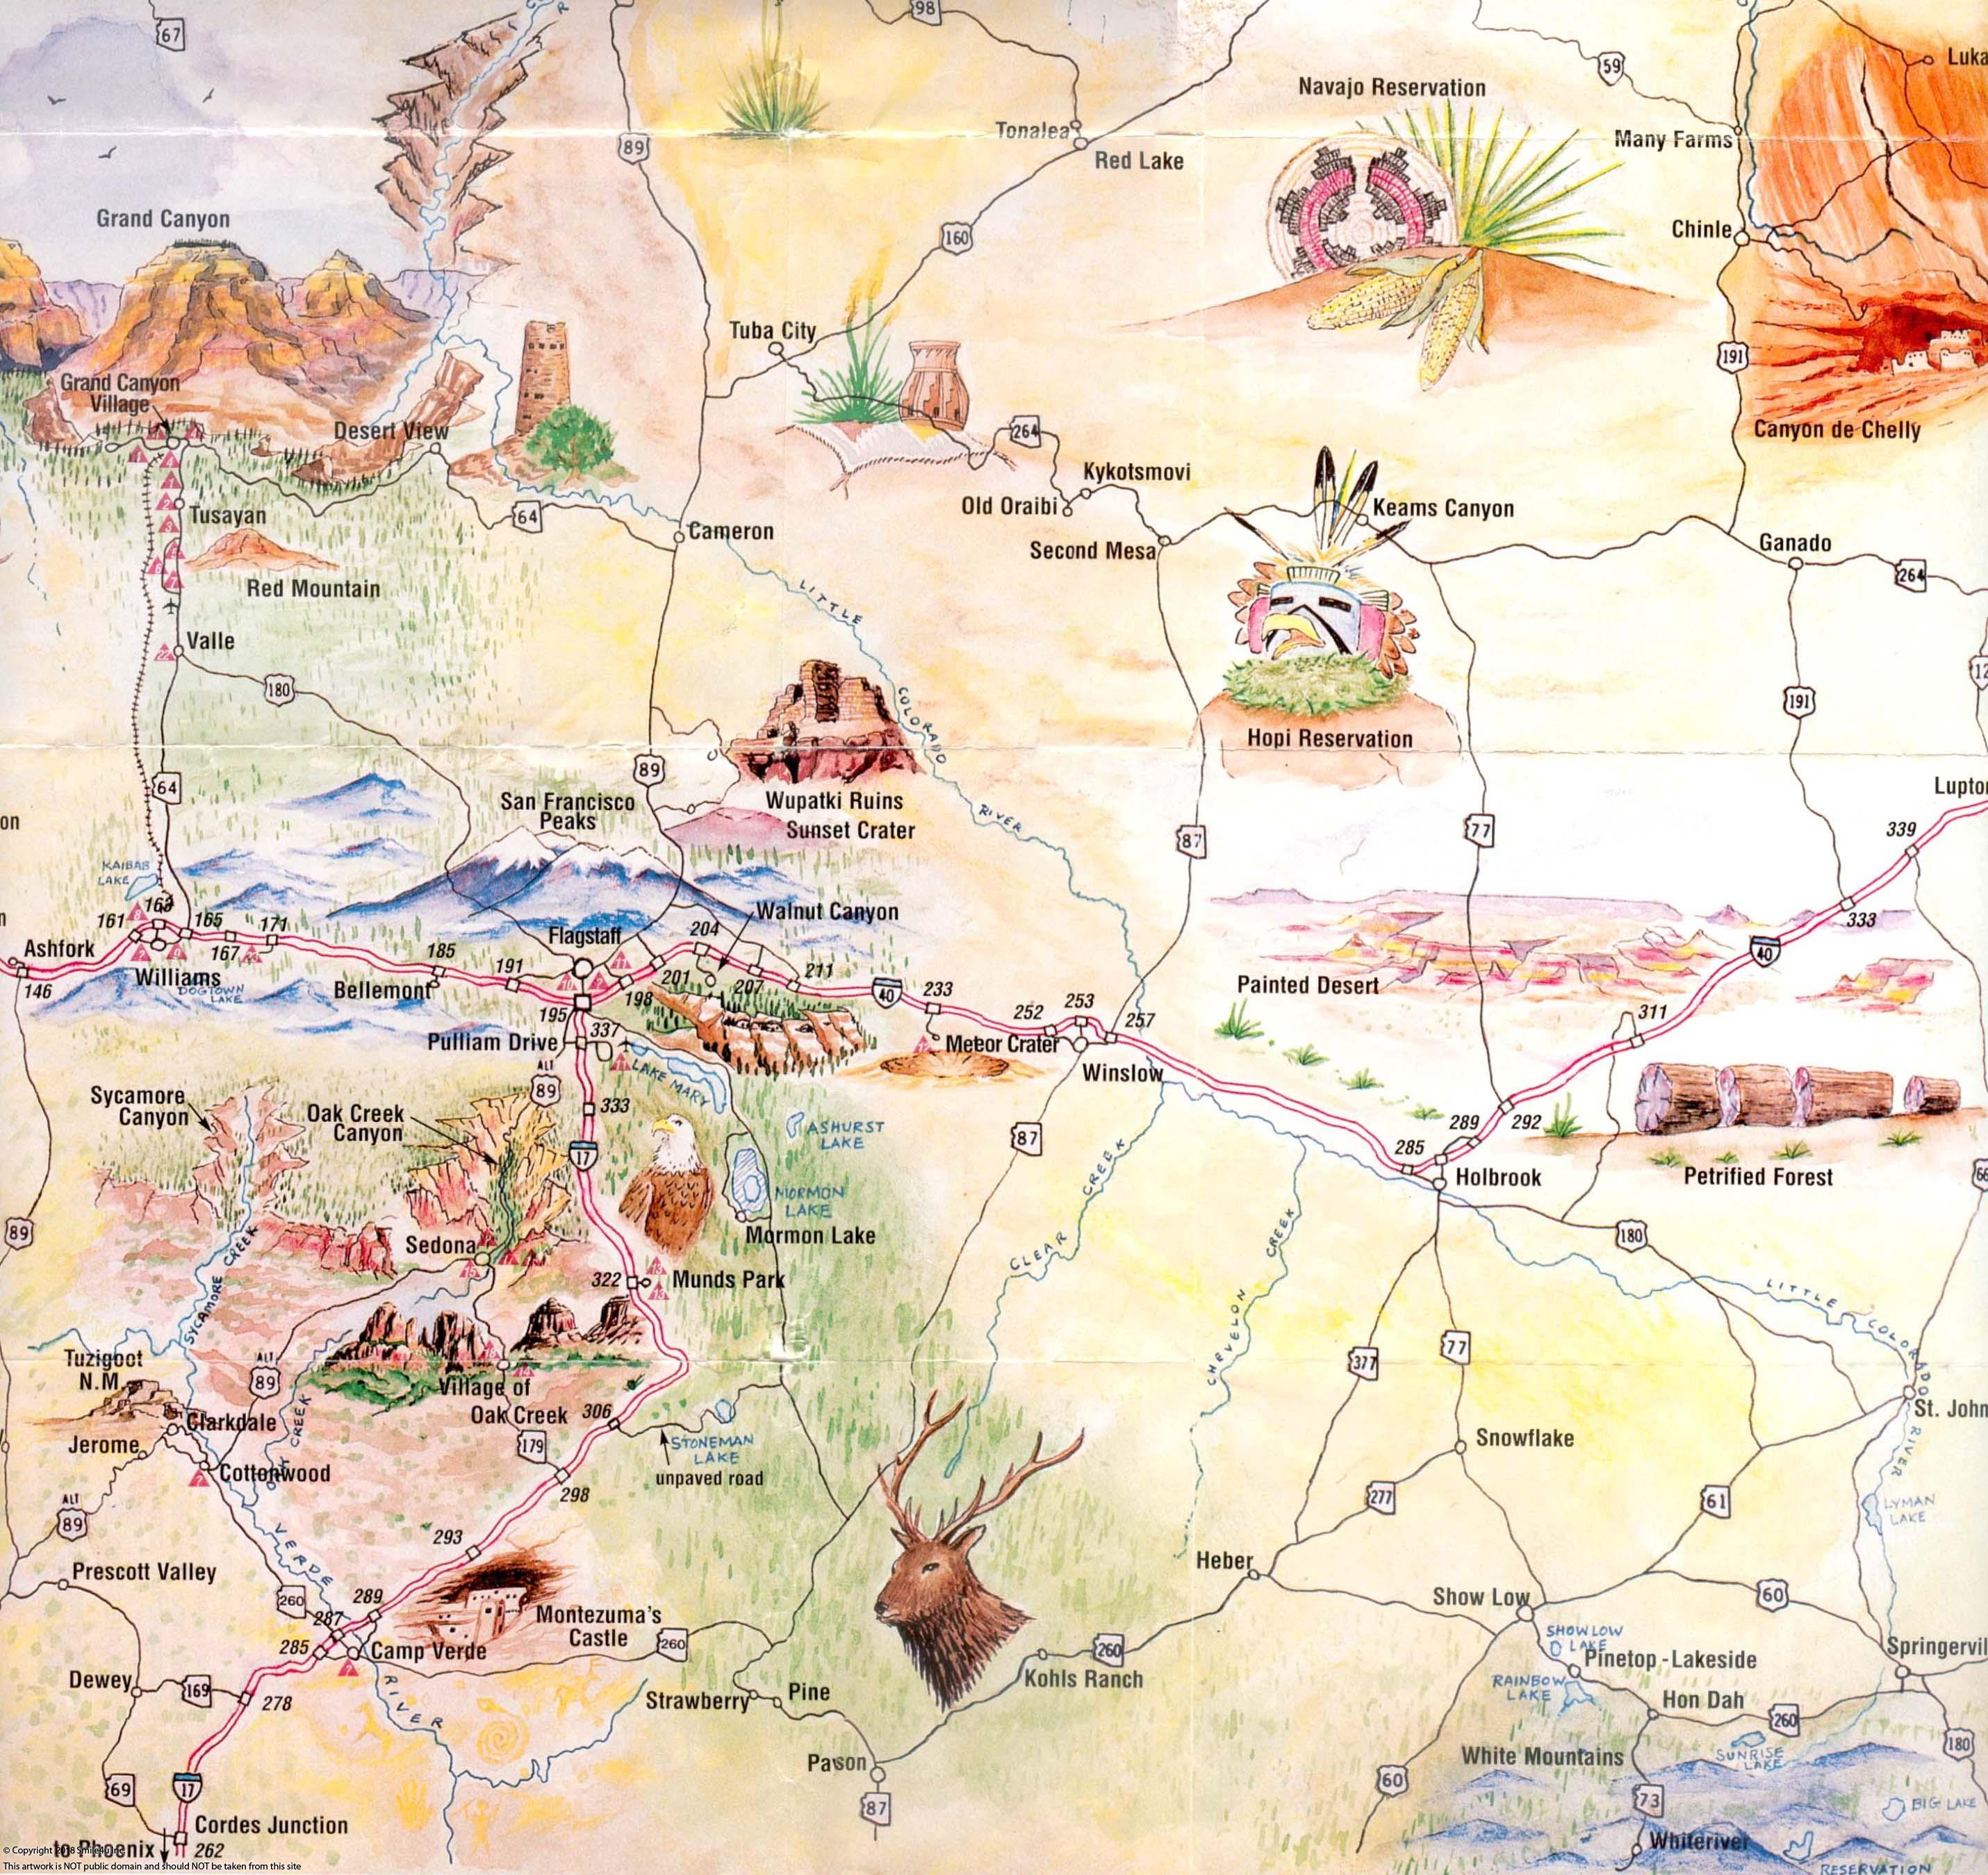 216483_watermarked_Navajo County Attraction Map.jpg